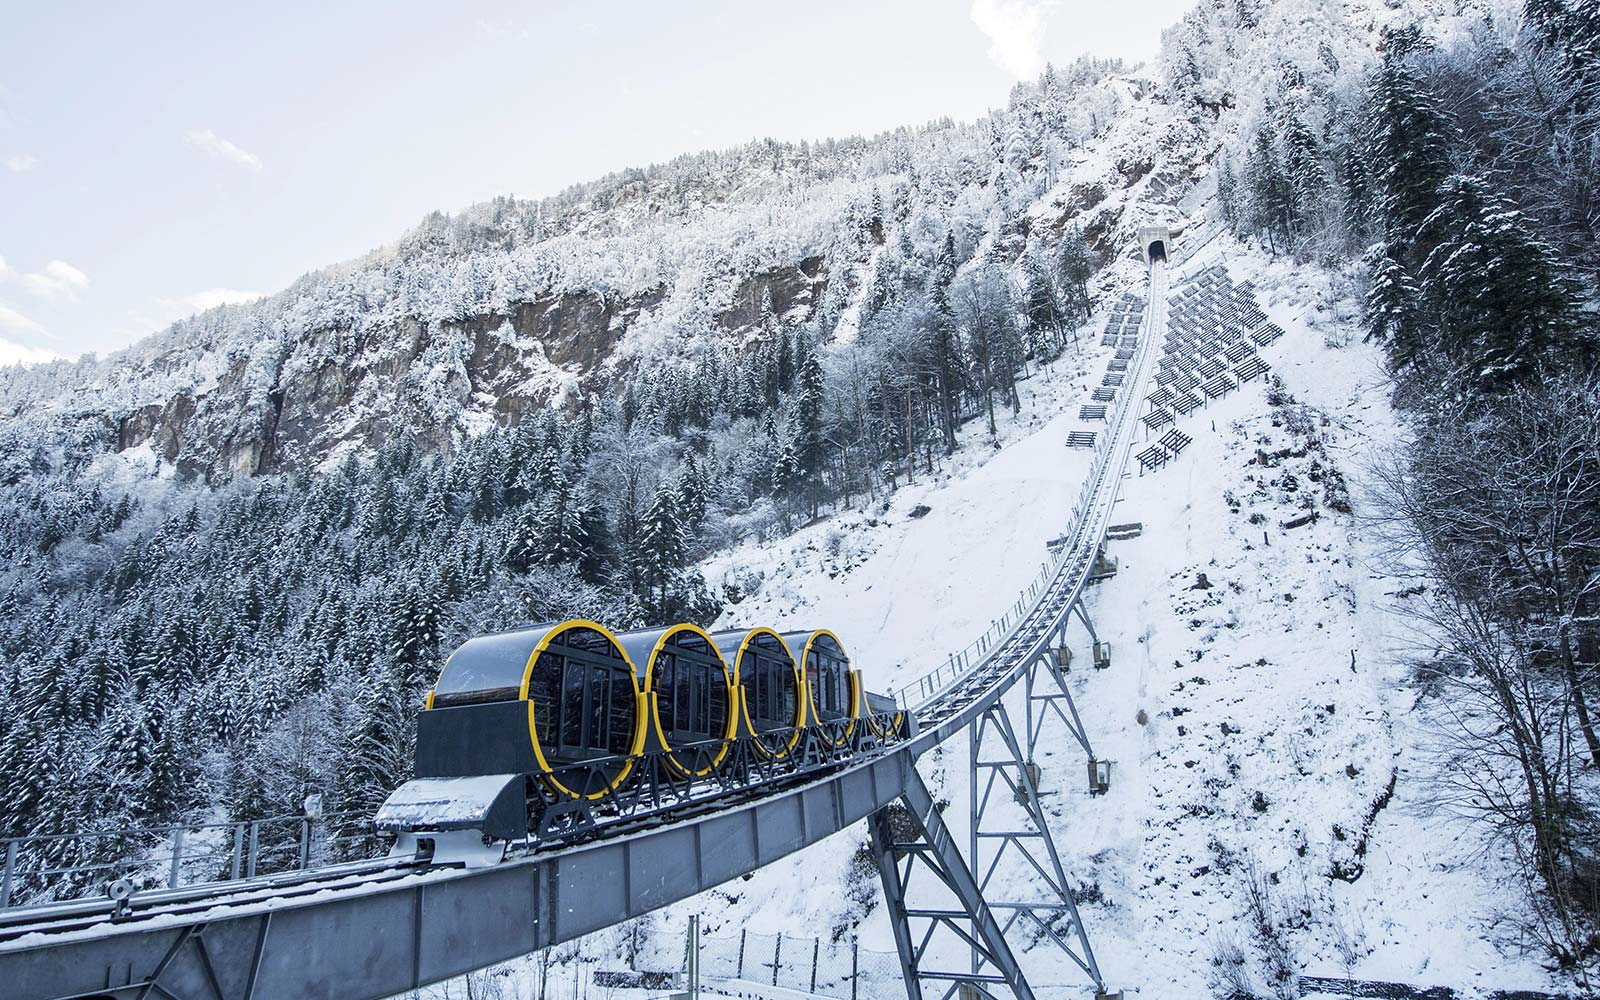 The World's Steepest Funicular Connects Two Gorgeous Swiss Mountain Towns